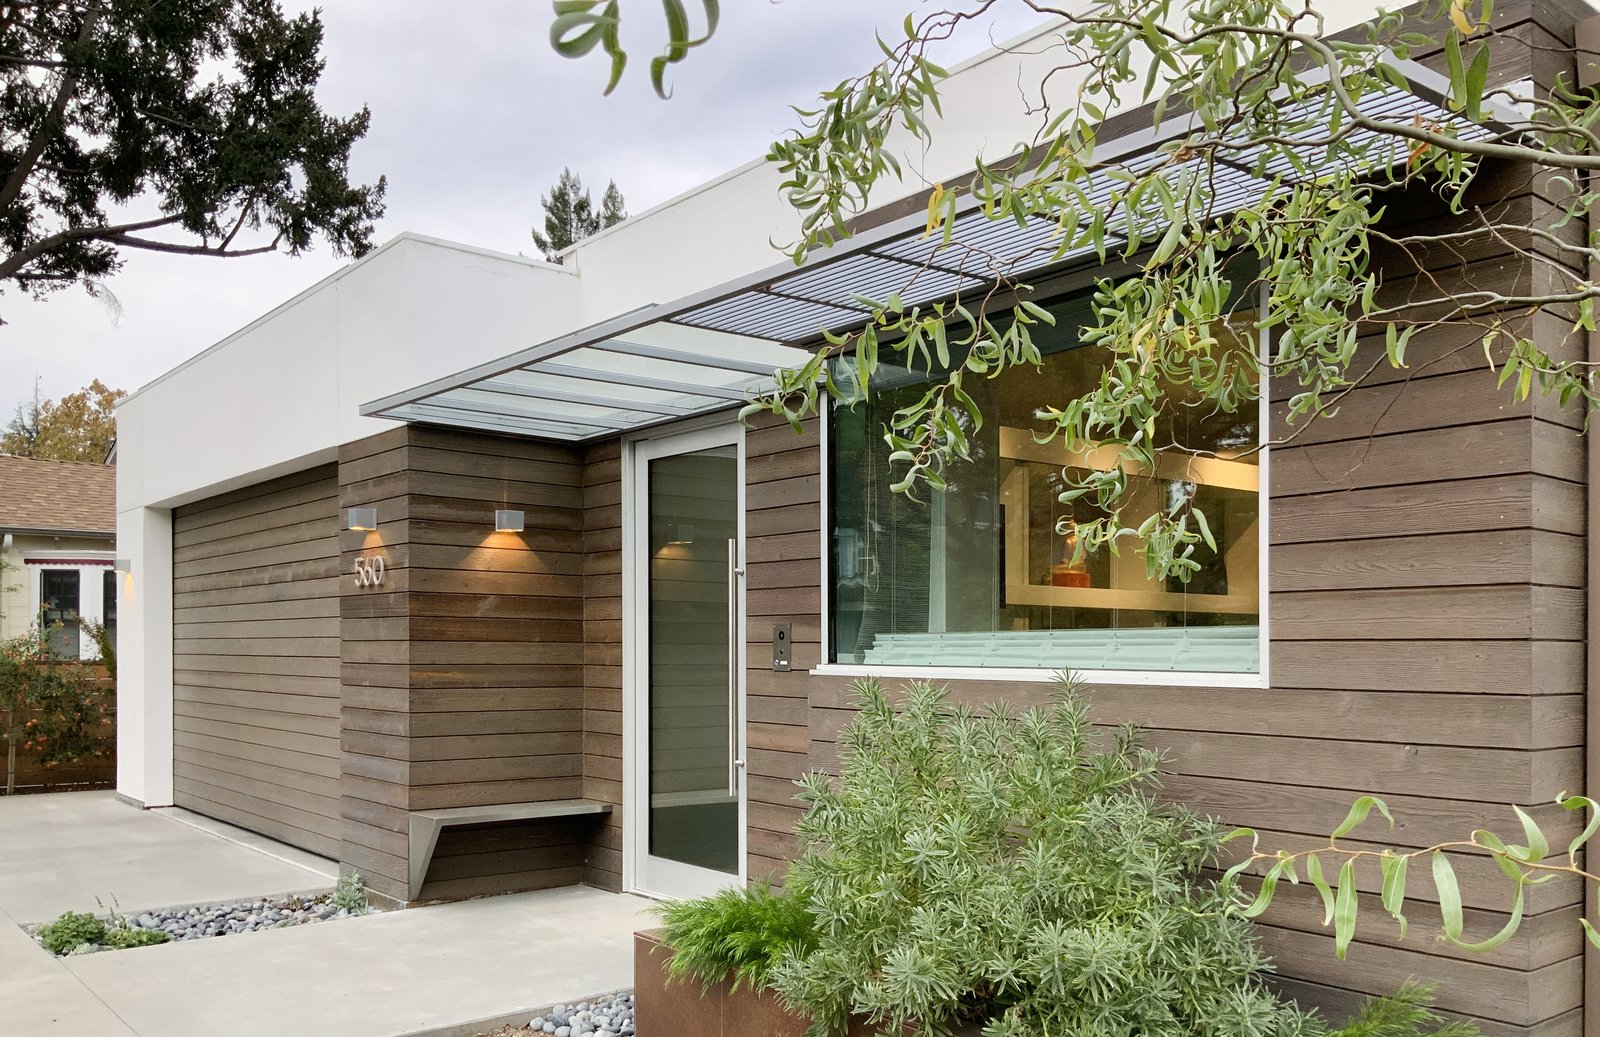 Exterior, Wood Siding Material, House Building Type, Flat RoofLine, and Stucco Siding Material A simple palette of white stucco and cedar with sunshade accents.  Oak Street by Rossington Architecture